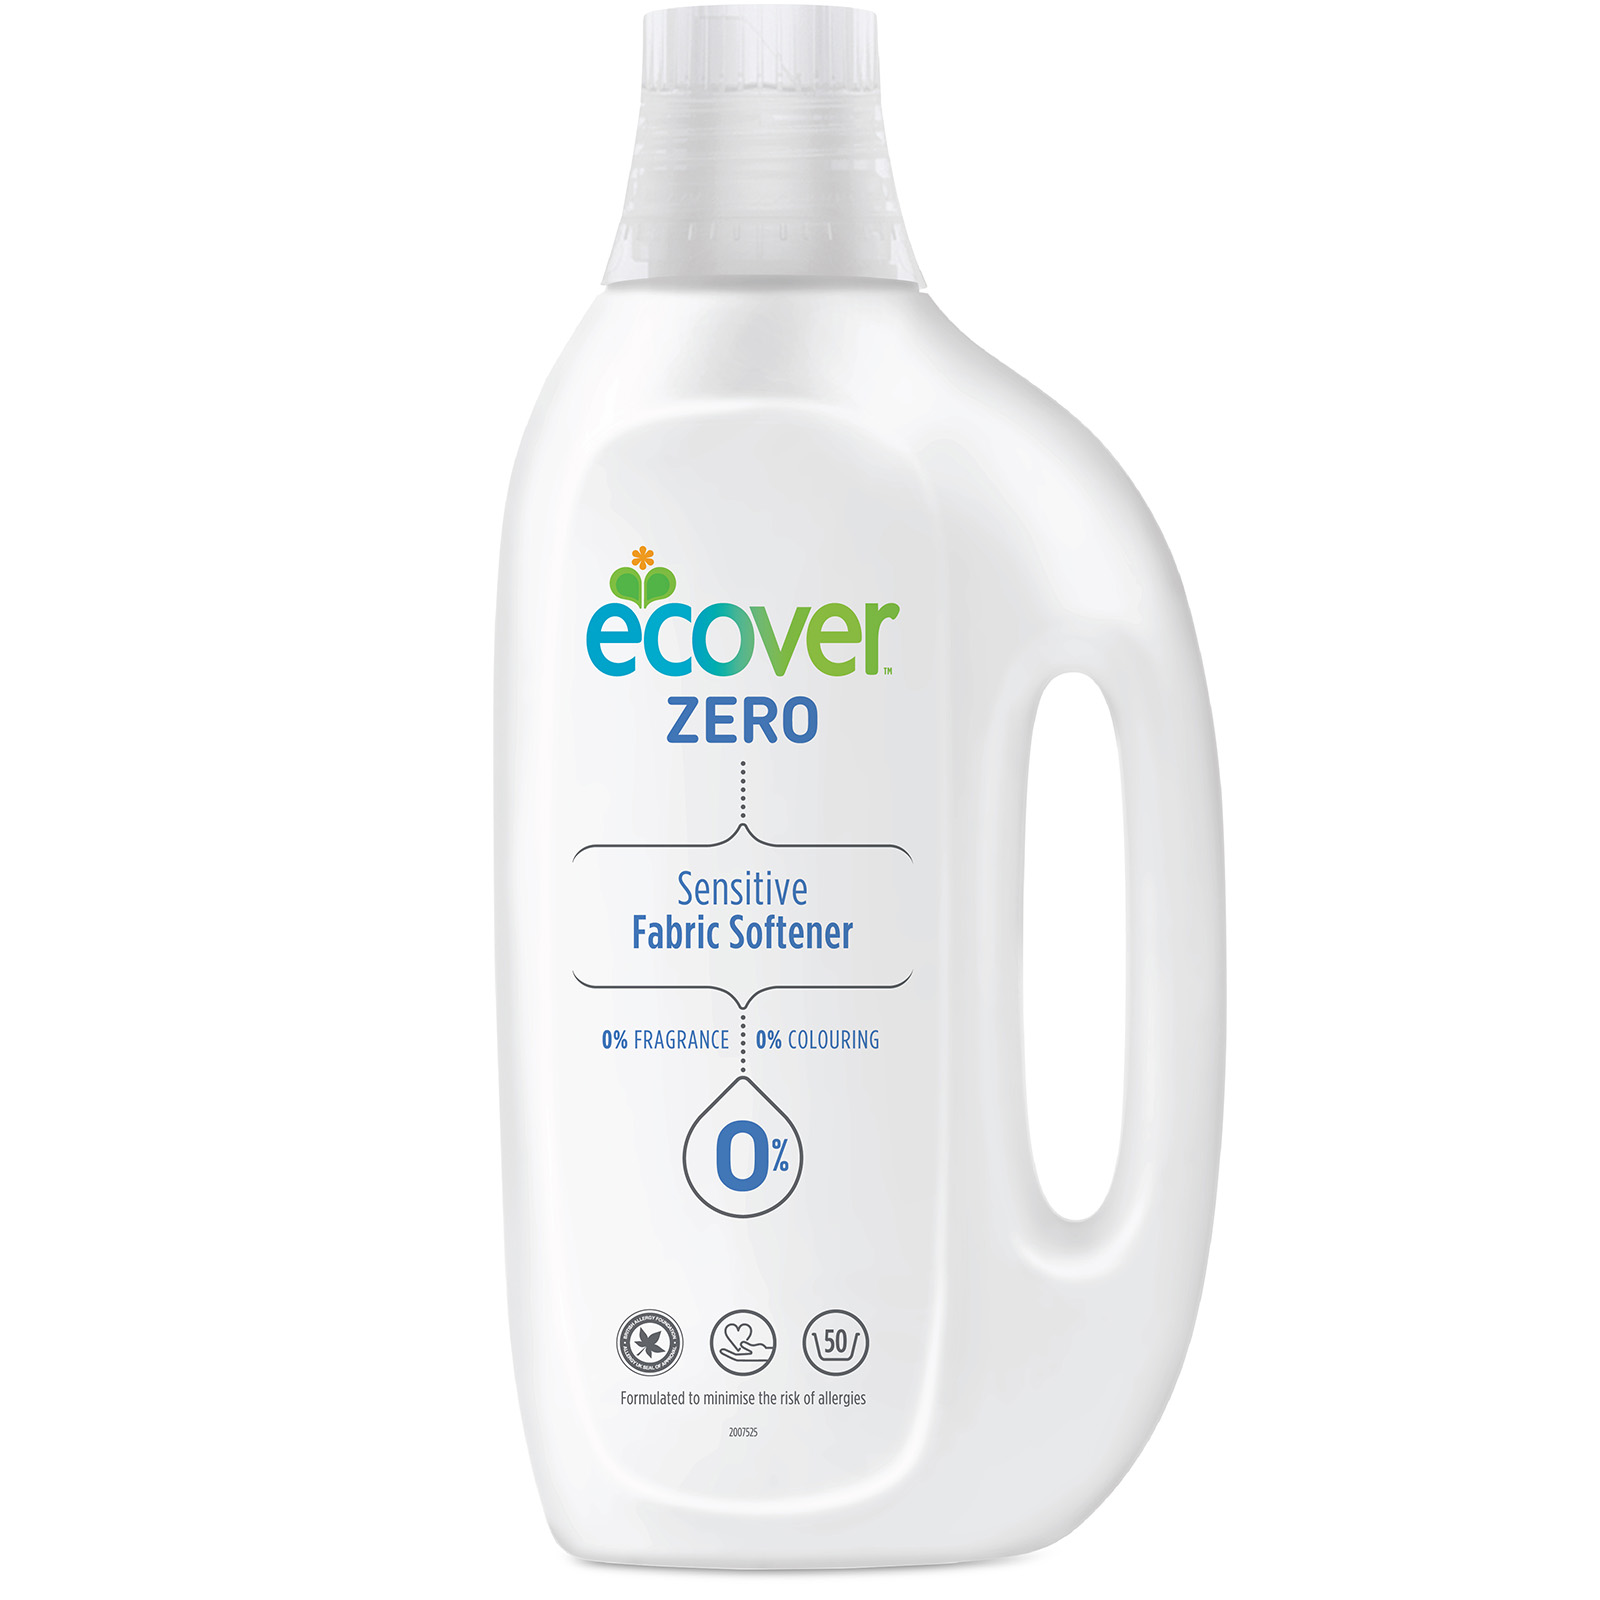 baby-fairEcover ZERO Fabric Softener (1.5L)